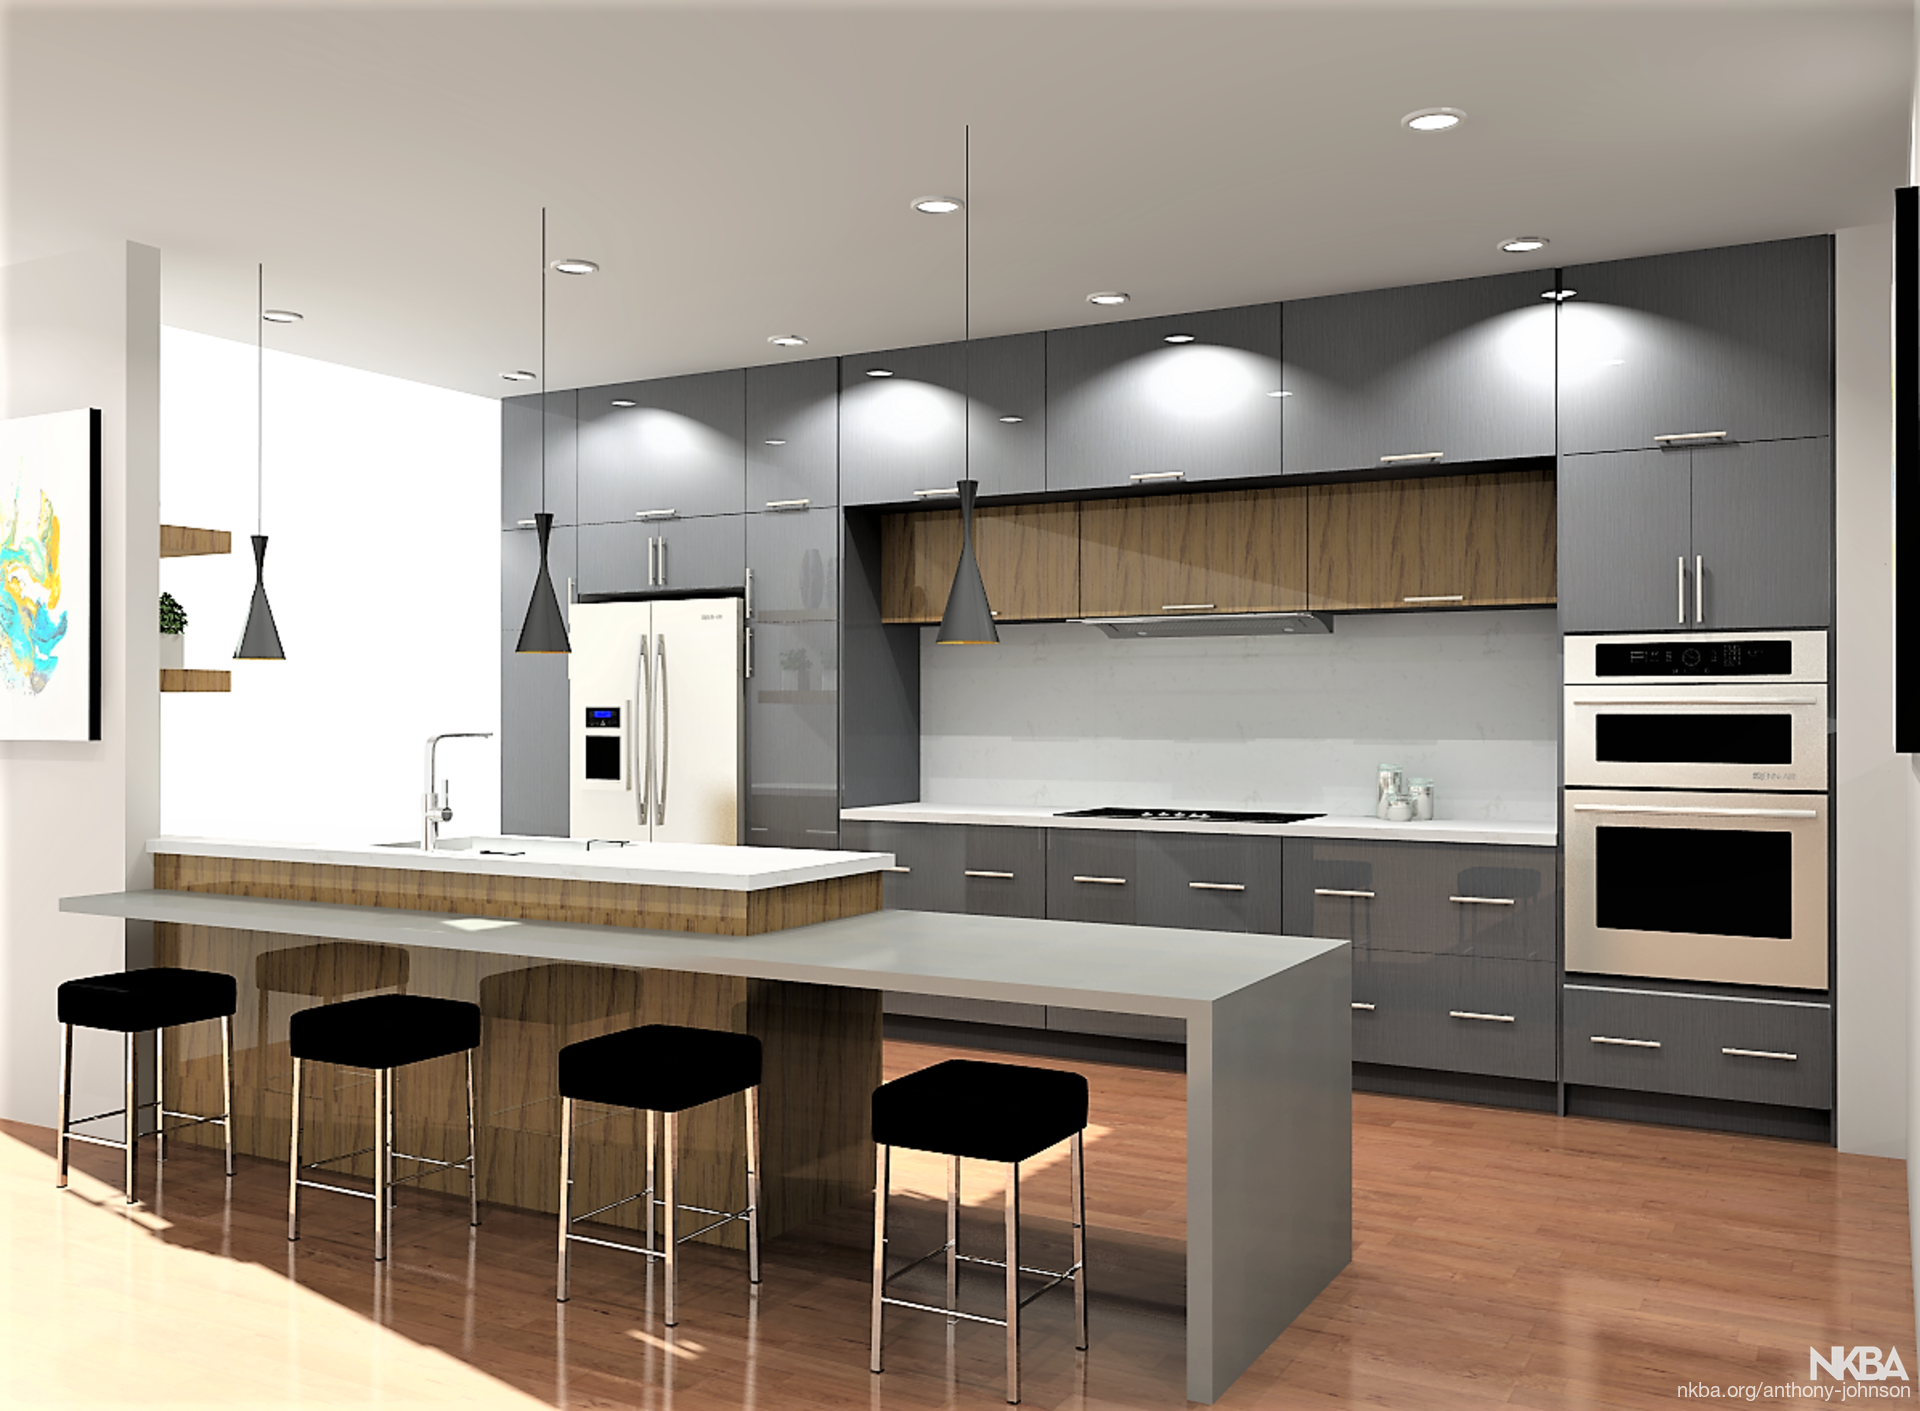 Modern Kitchen Design (Hollywood) - NKBA on Modern Kitchen Design  id=51303